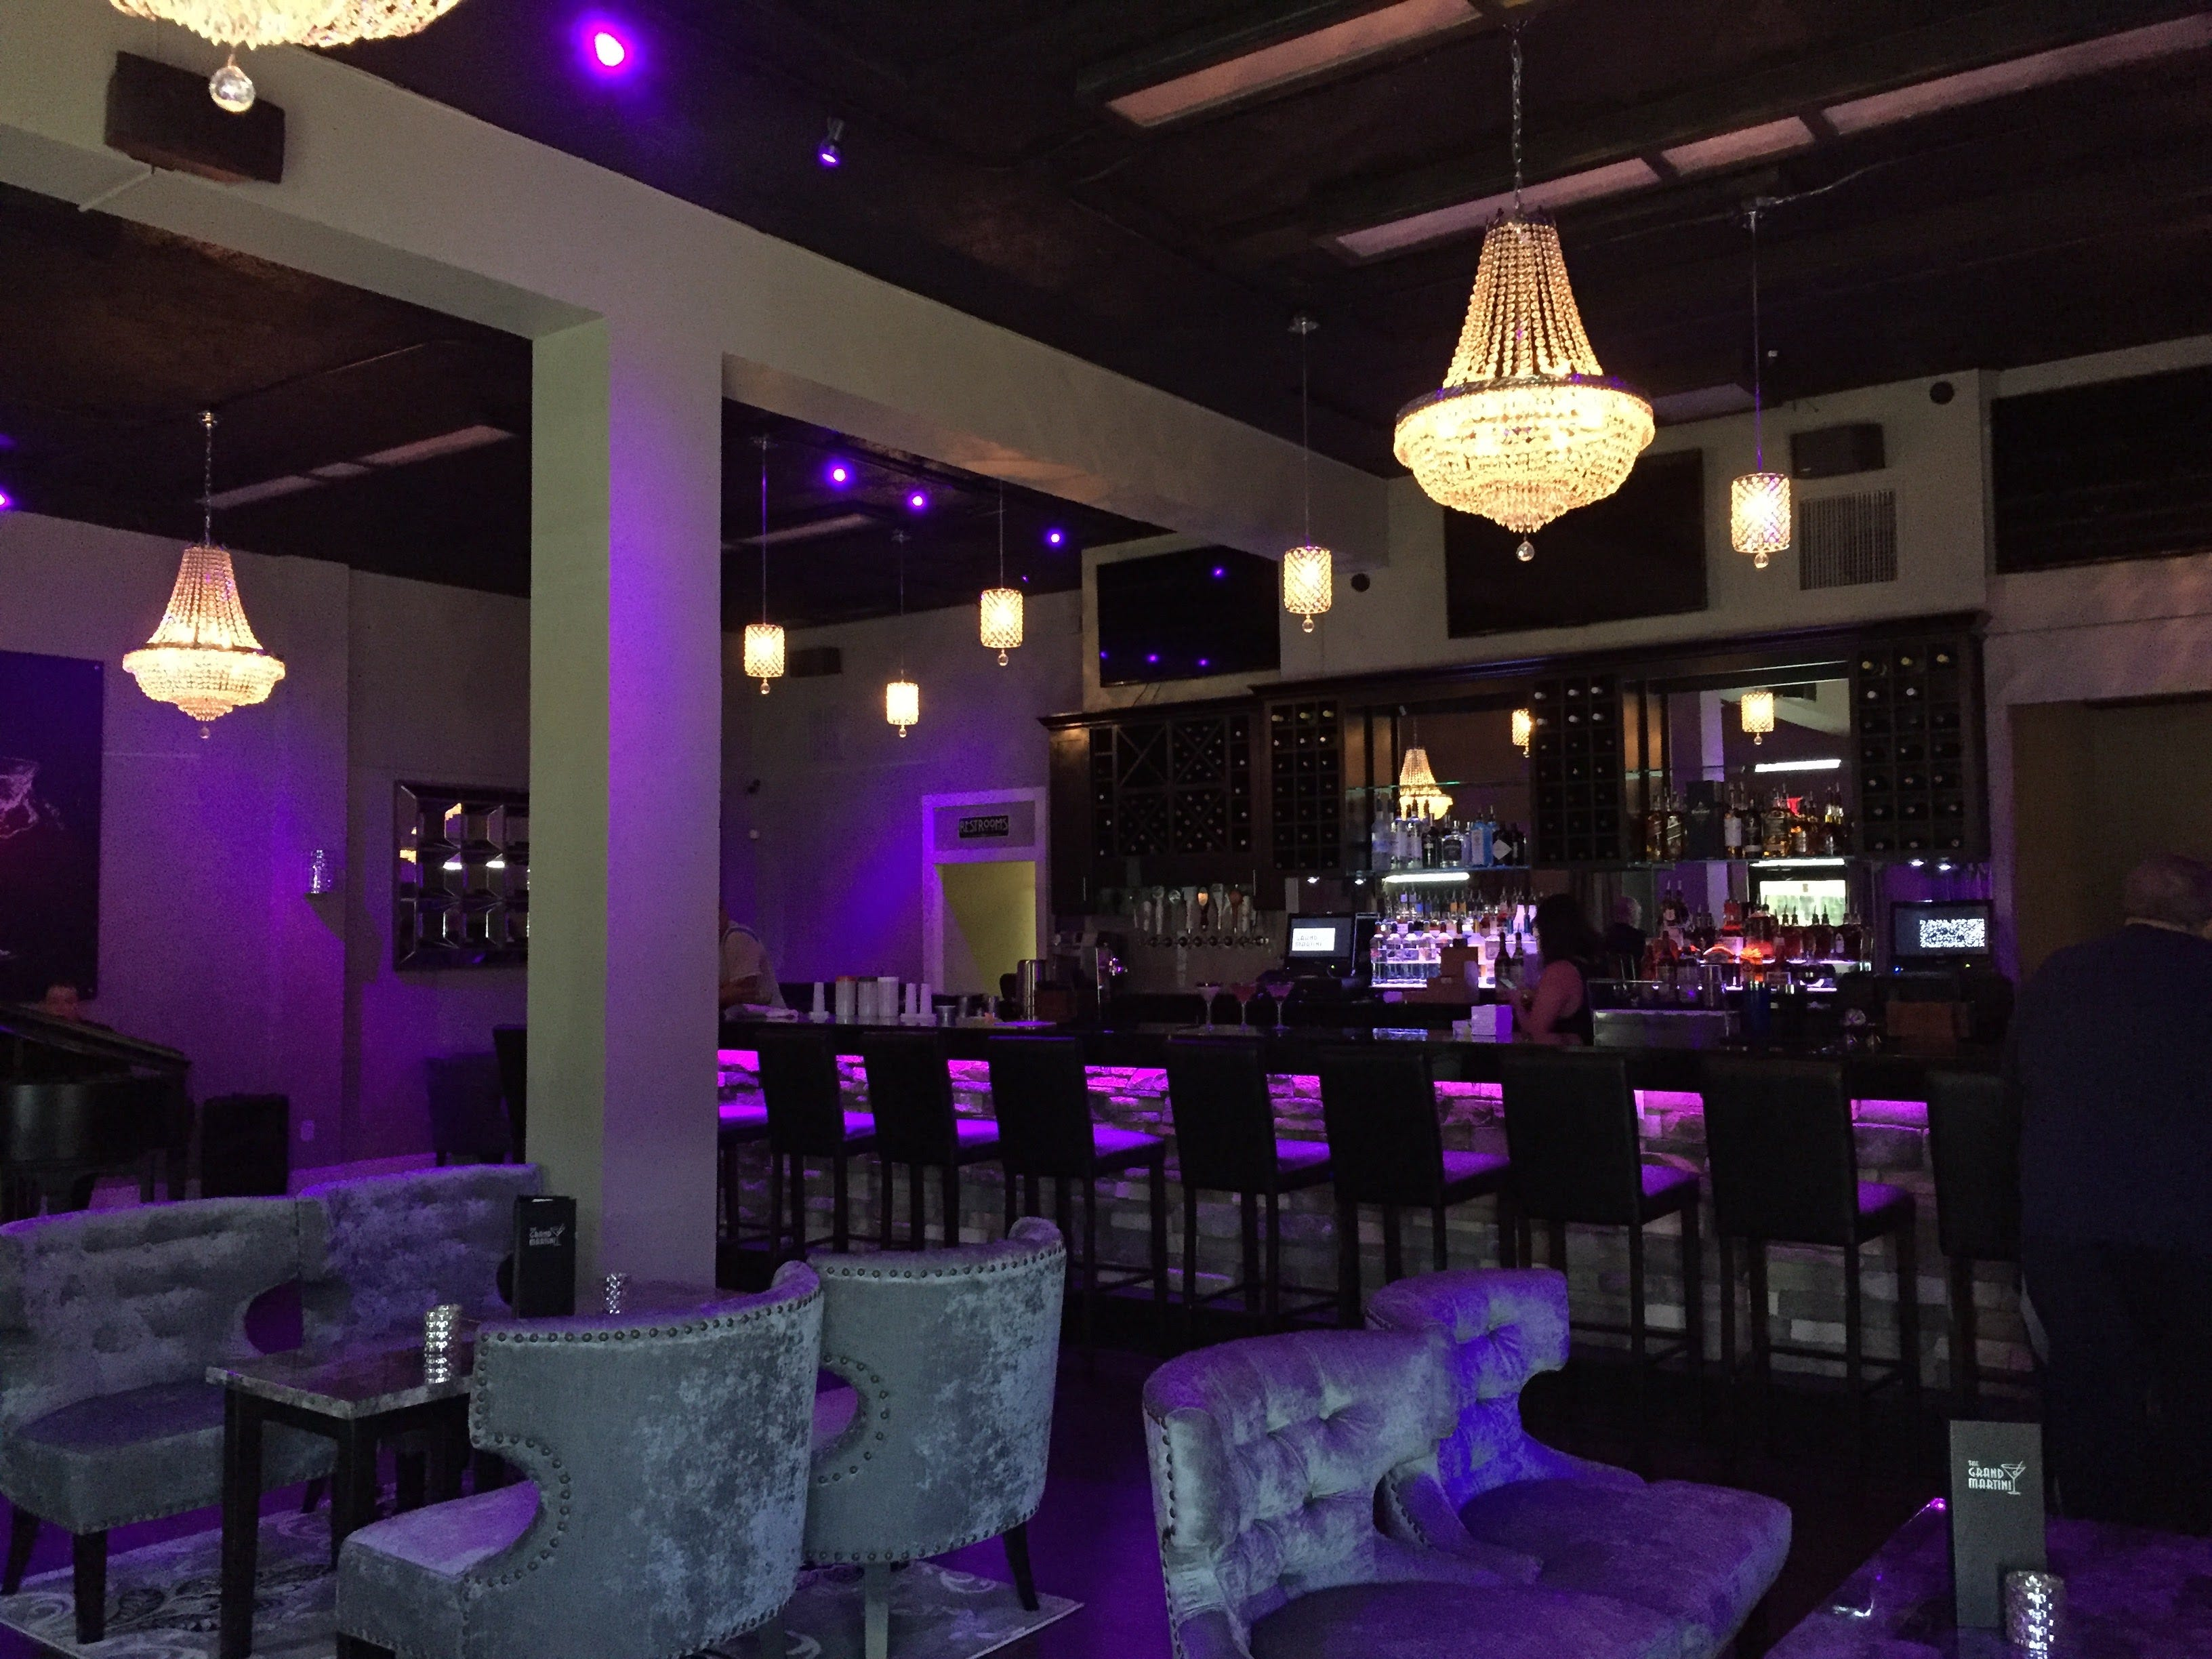 636433210839633798-IMG-3535 Upscale martini bar to open in Titusville